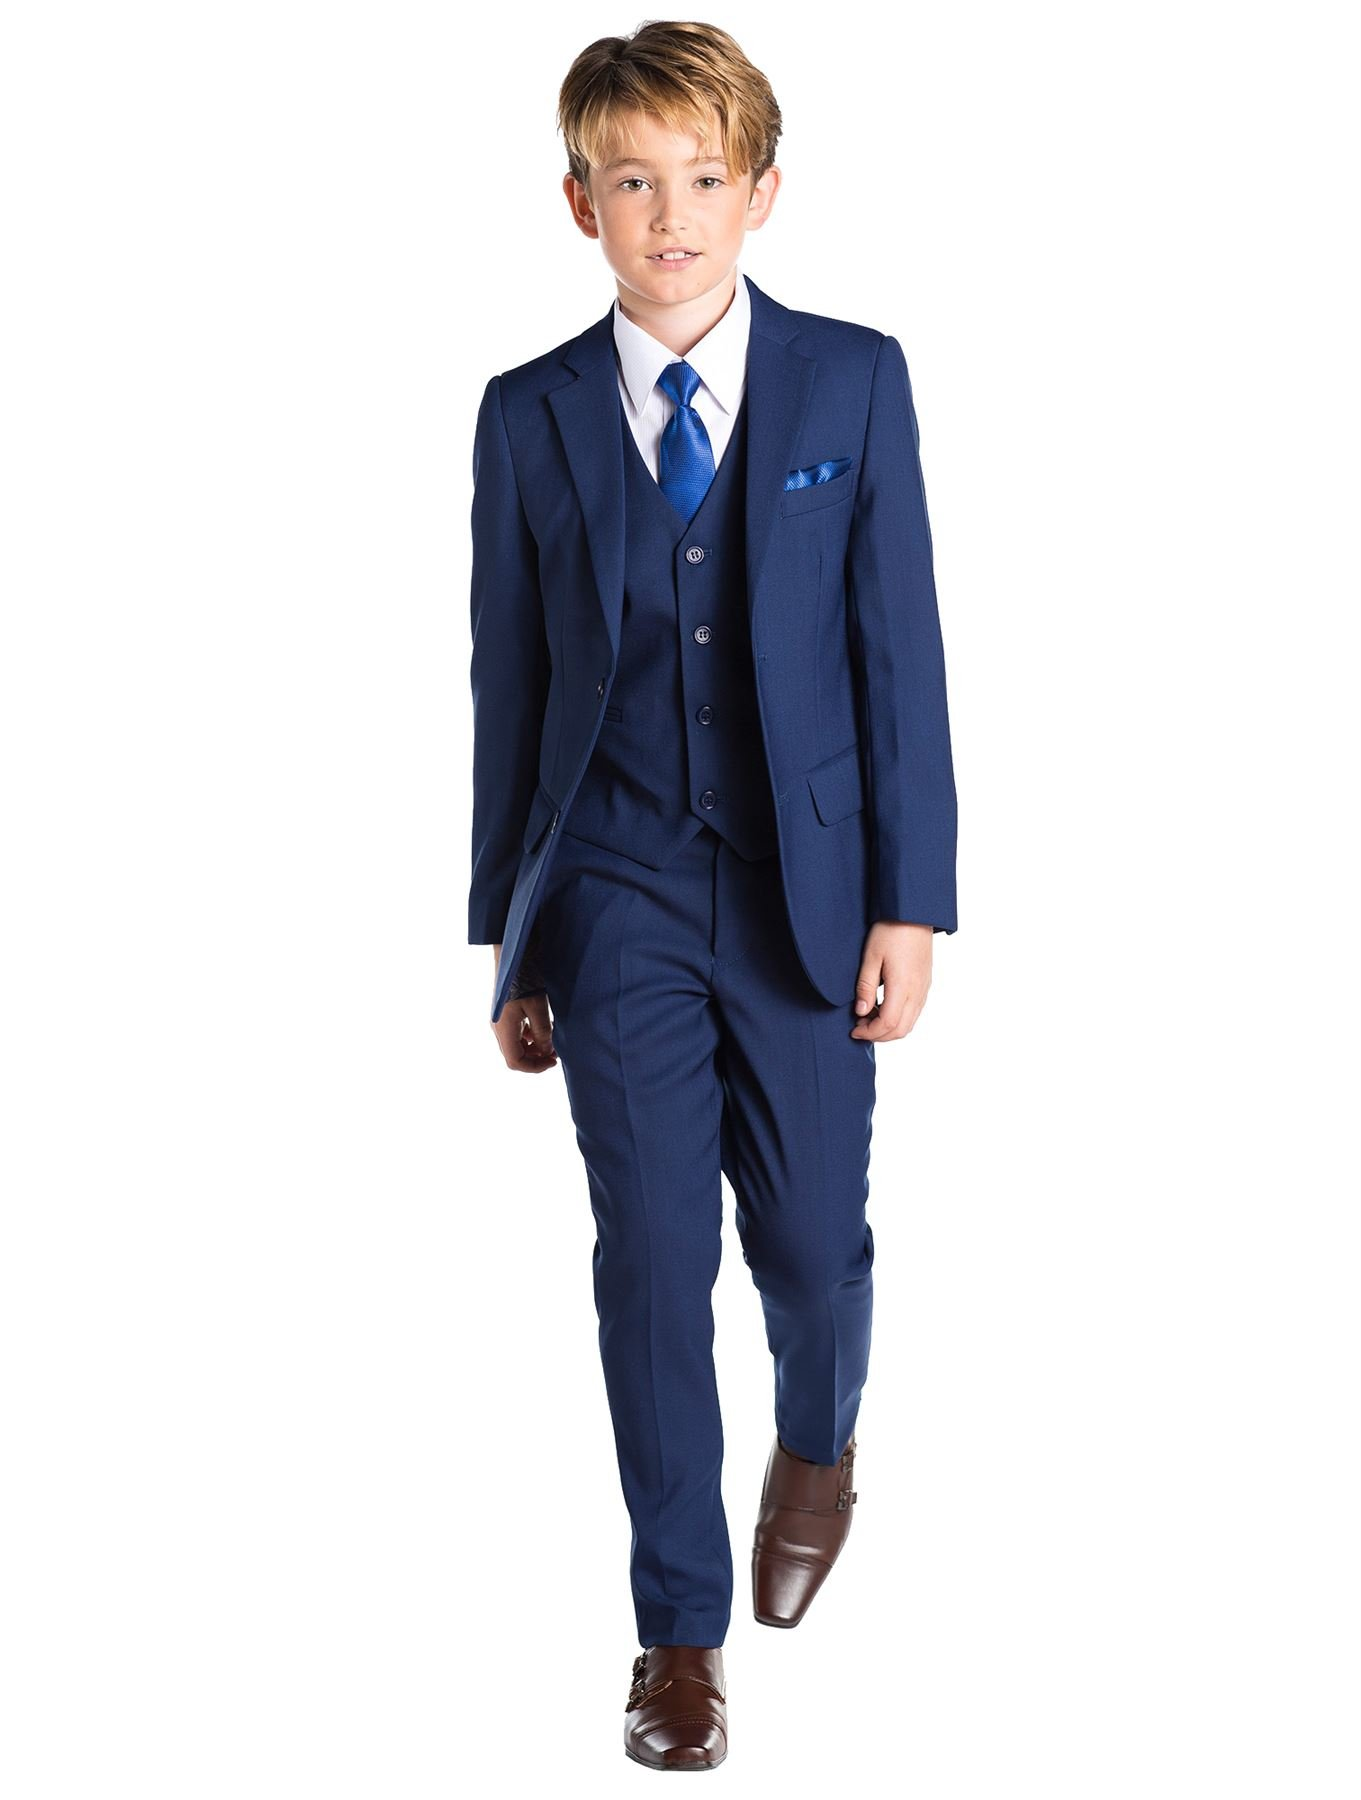 Paisley of London, Kingsman Blue, Boys Slim Fit Occasion Wear, Kids Formal Wedding Suit Set, 14